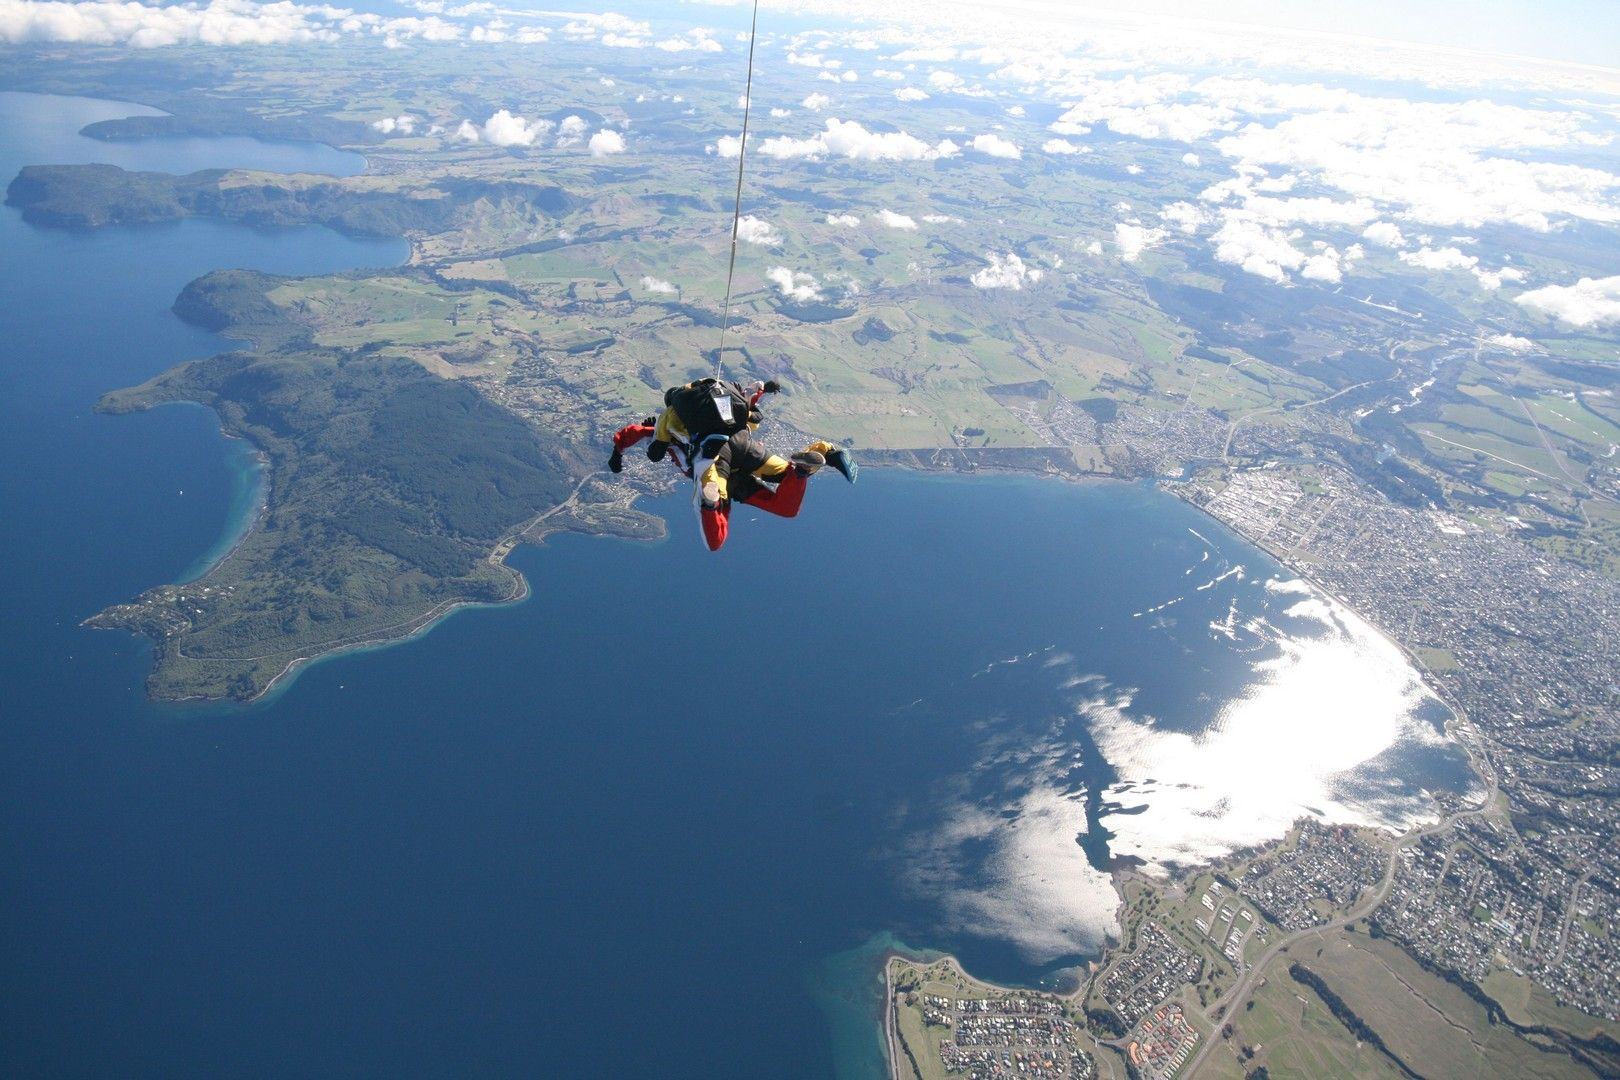 10% off skydiving camera packages at Taupo Tandem Skydive